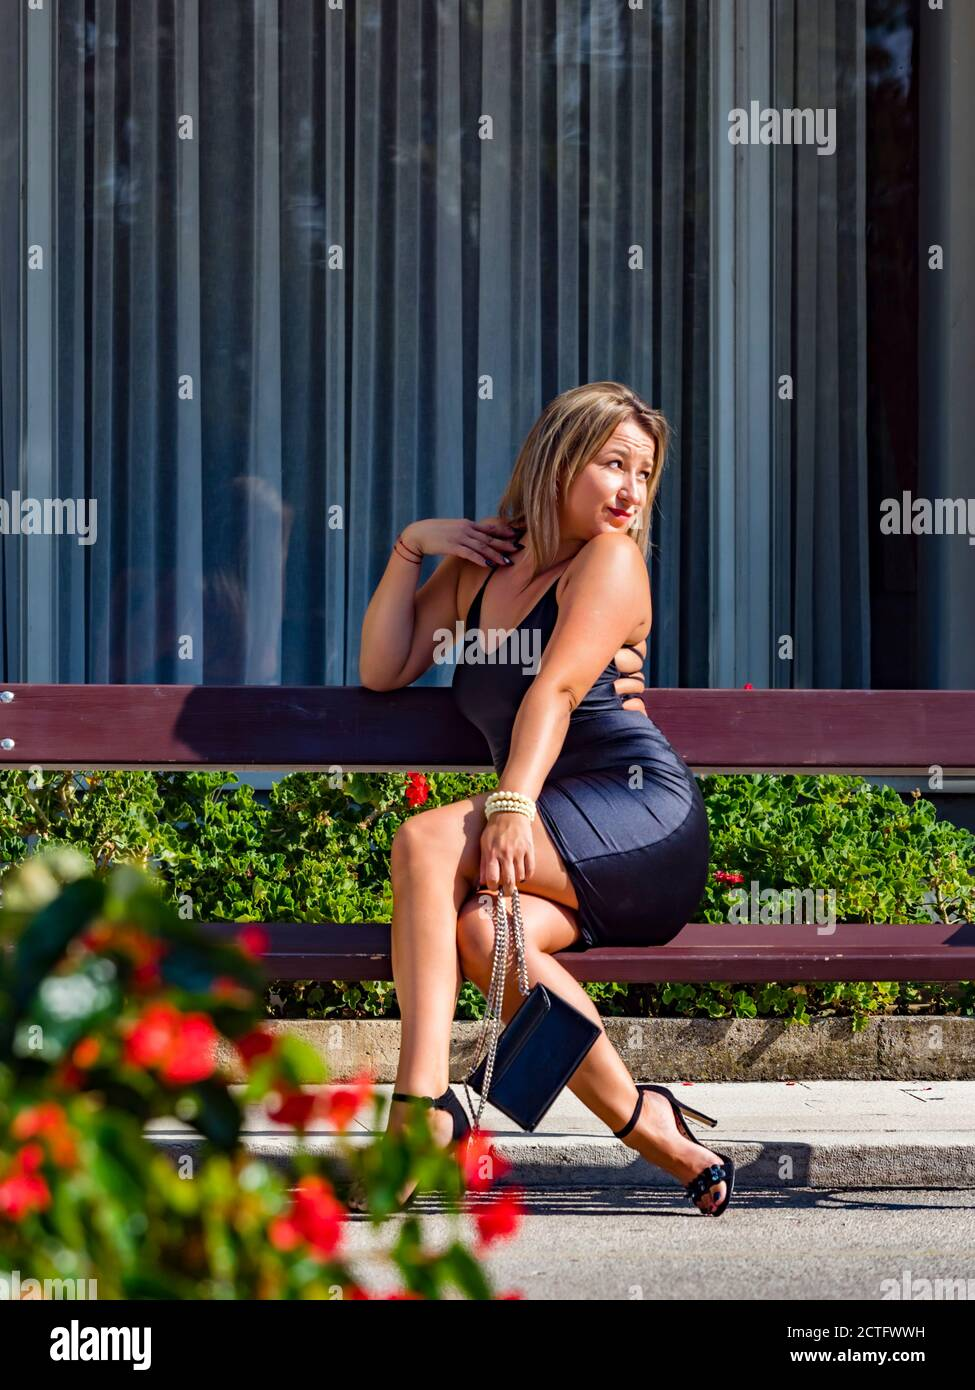 Young woman is sitting on wooden bench expecting for someone waiting wait looking away hoping hope aside hand hold holding purse legs heels Stock Photo